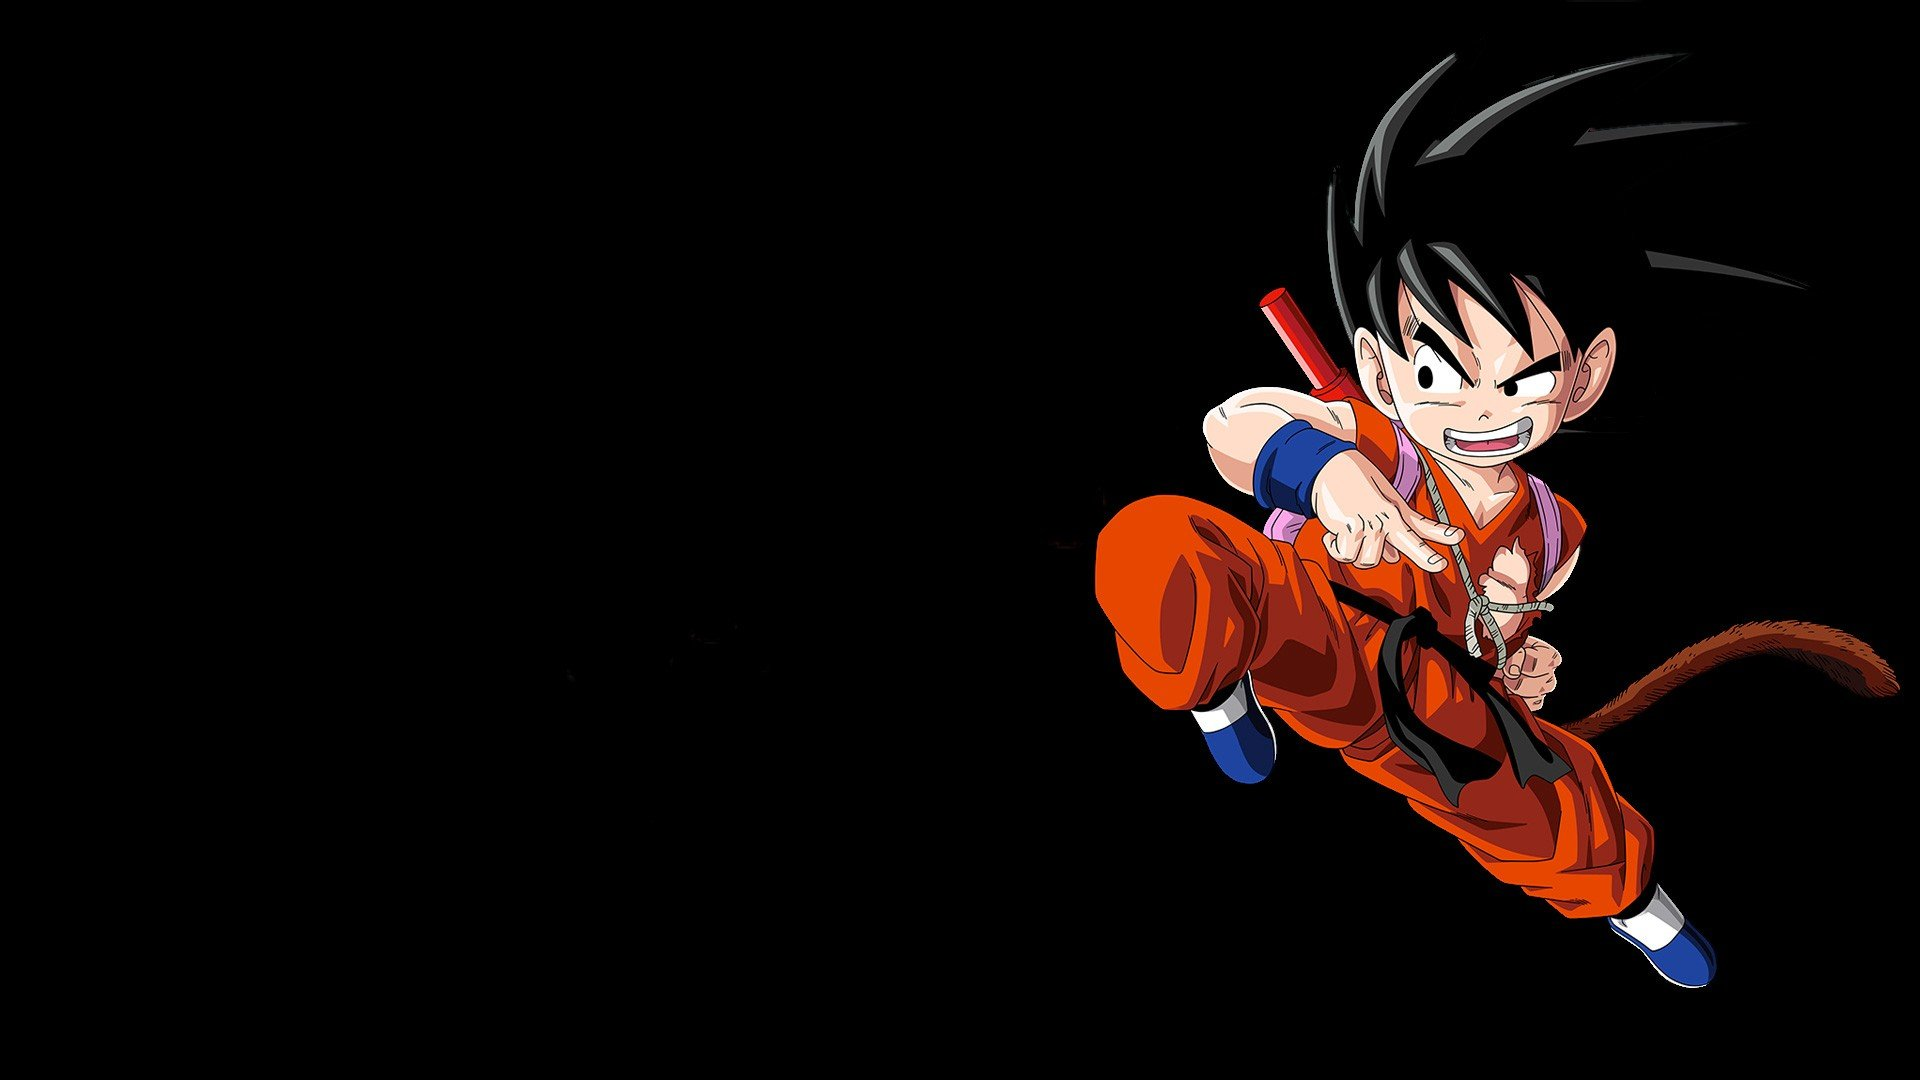 Dragon Ball Z Kid Goku Hd Wallpapers Desktop And Mobile Images Photos